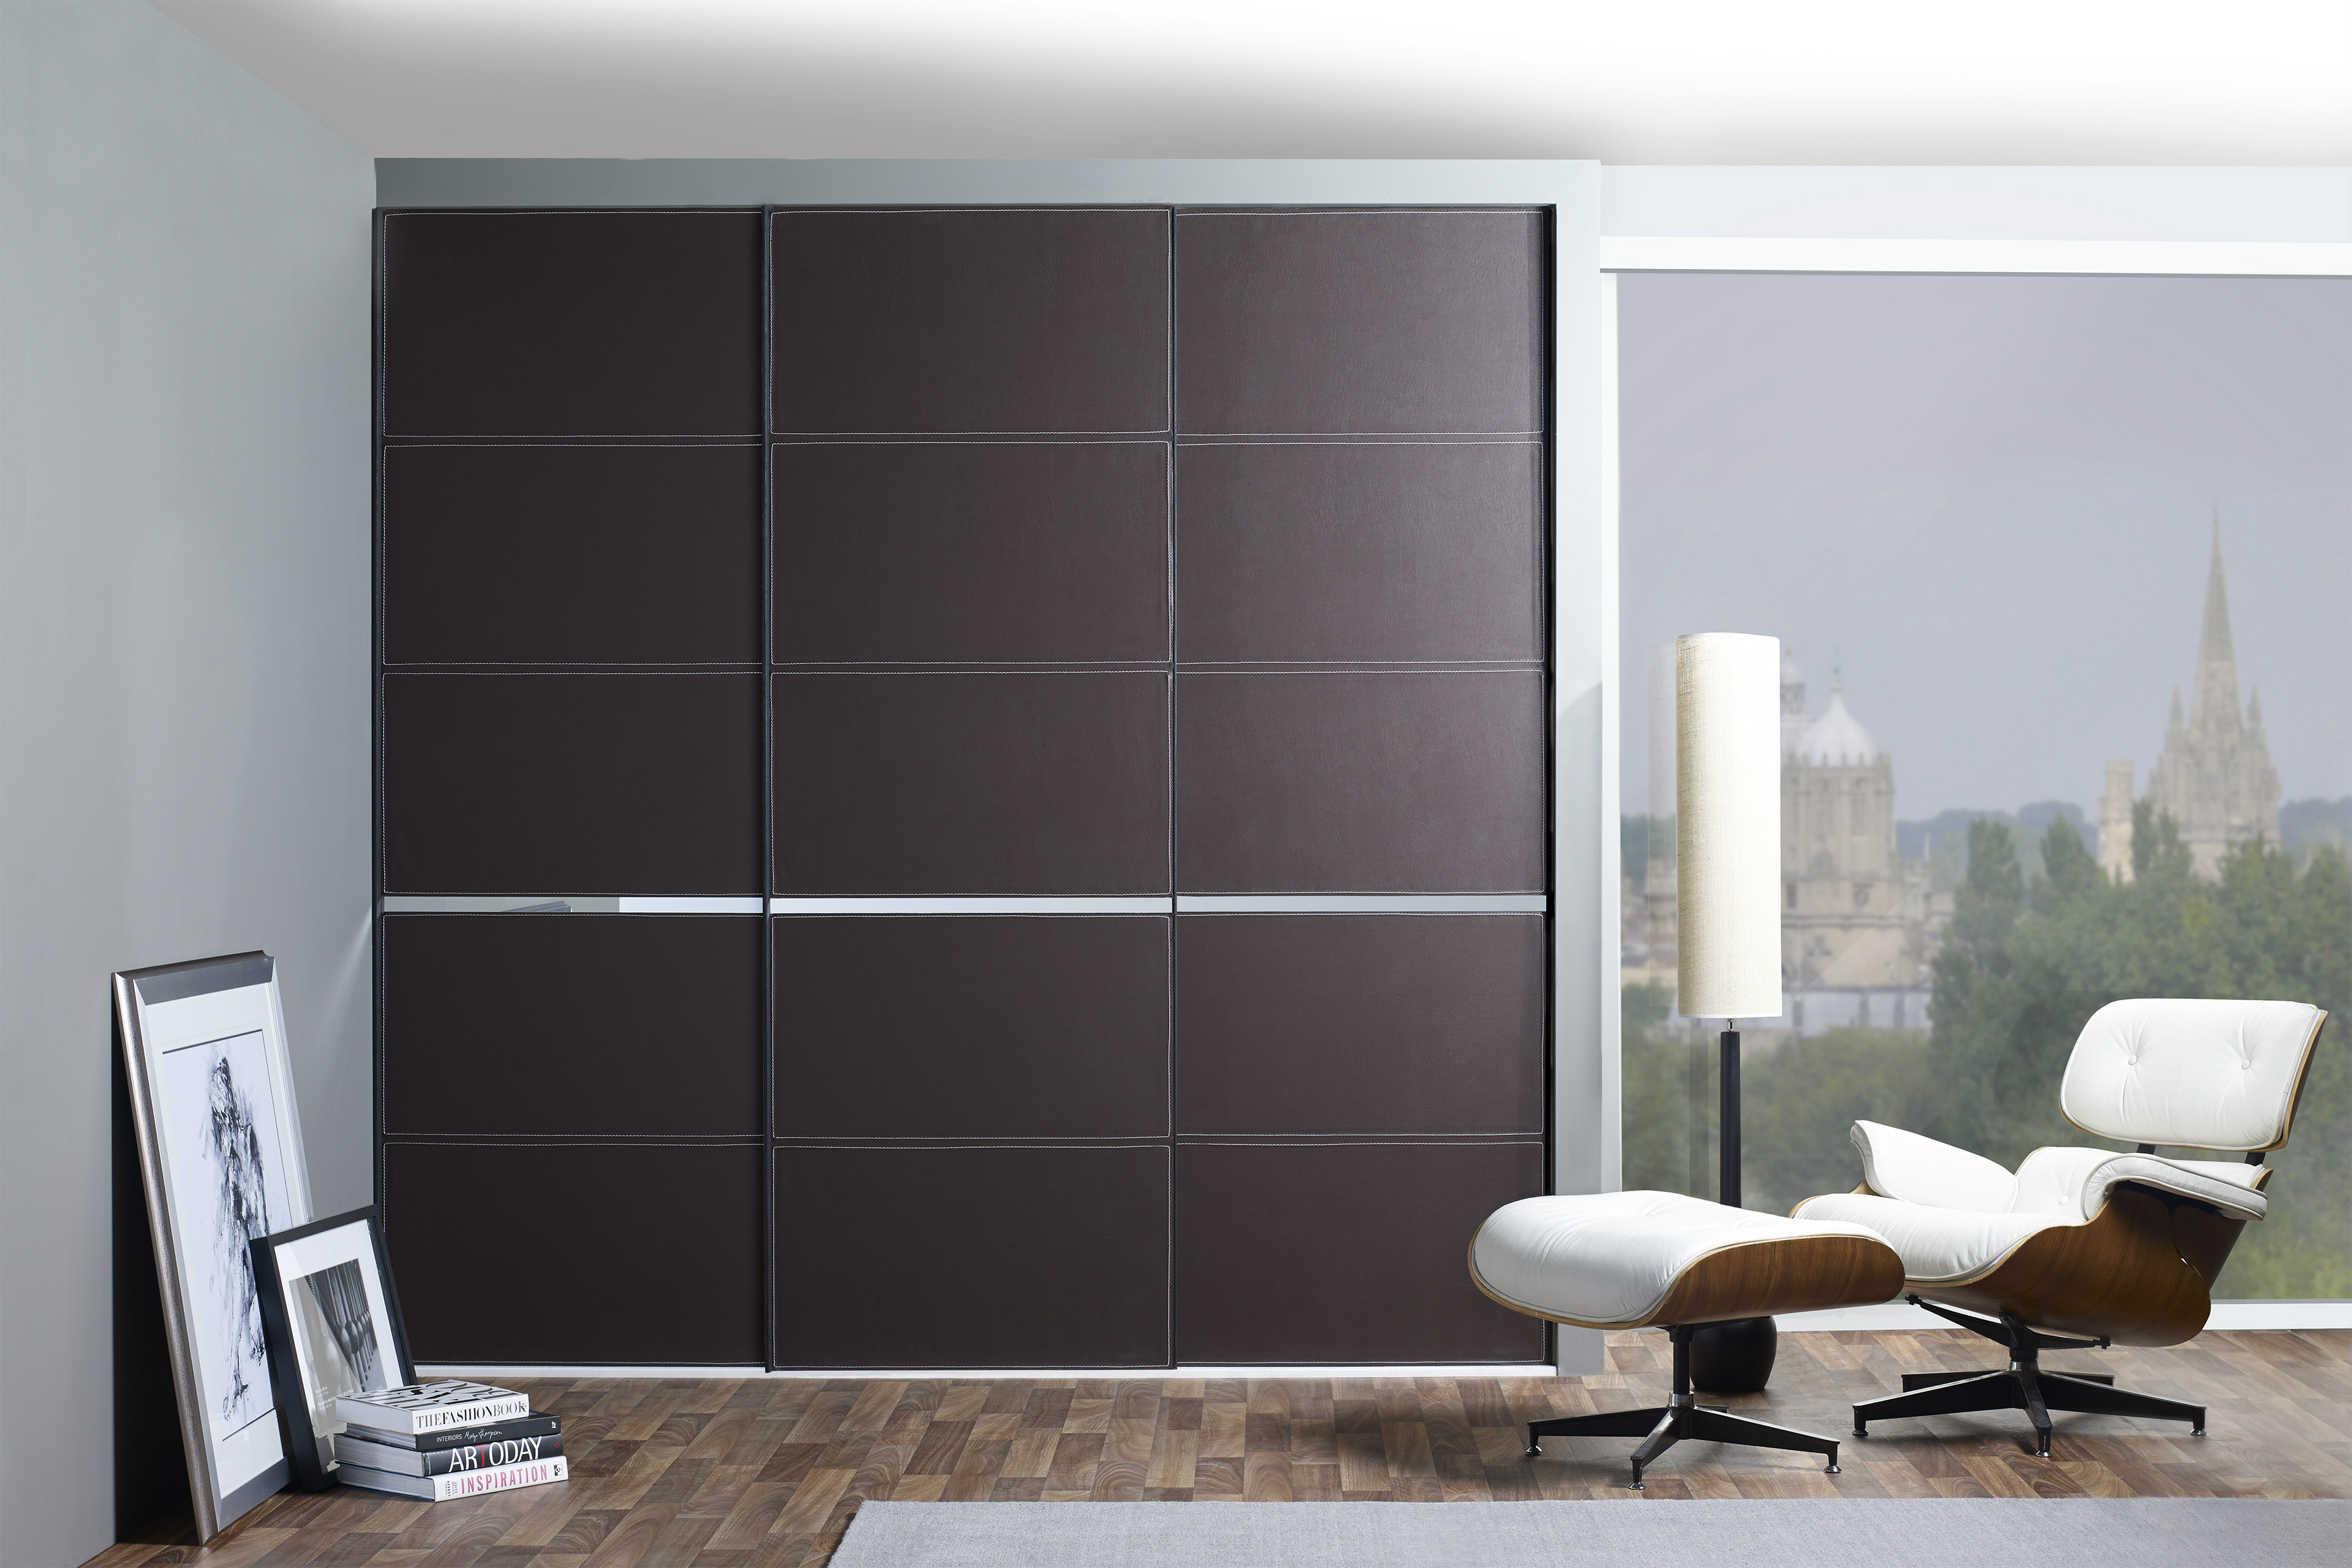 Renowned for innovative wardrobe and room ider solutions Draks has introduced the ultimate in leather-effect doors in answer to demand from ... & Draks answers call for luxurious leather in wardrobe doors - The Art ...